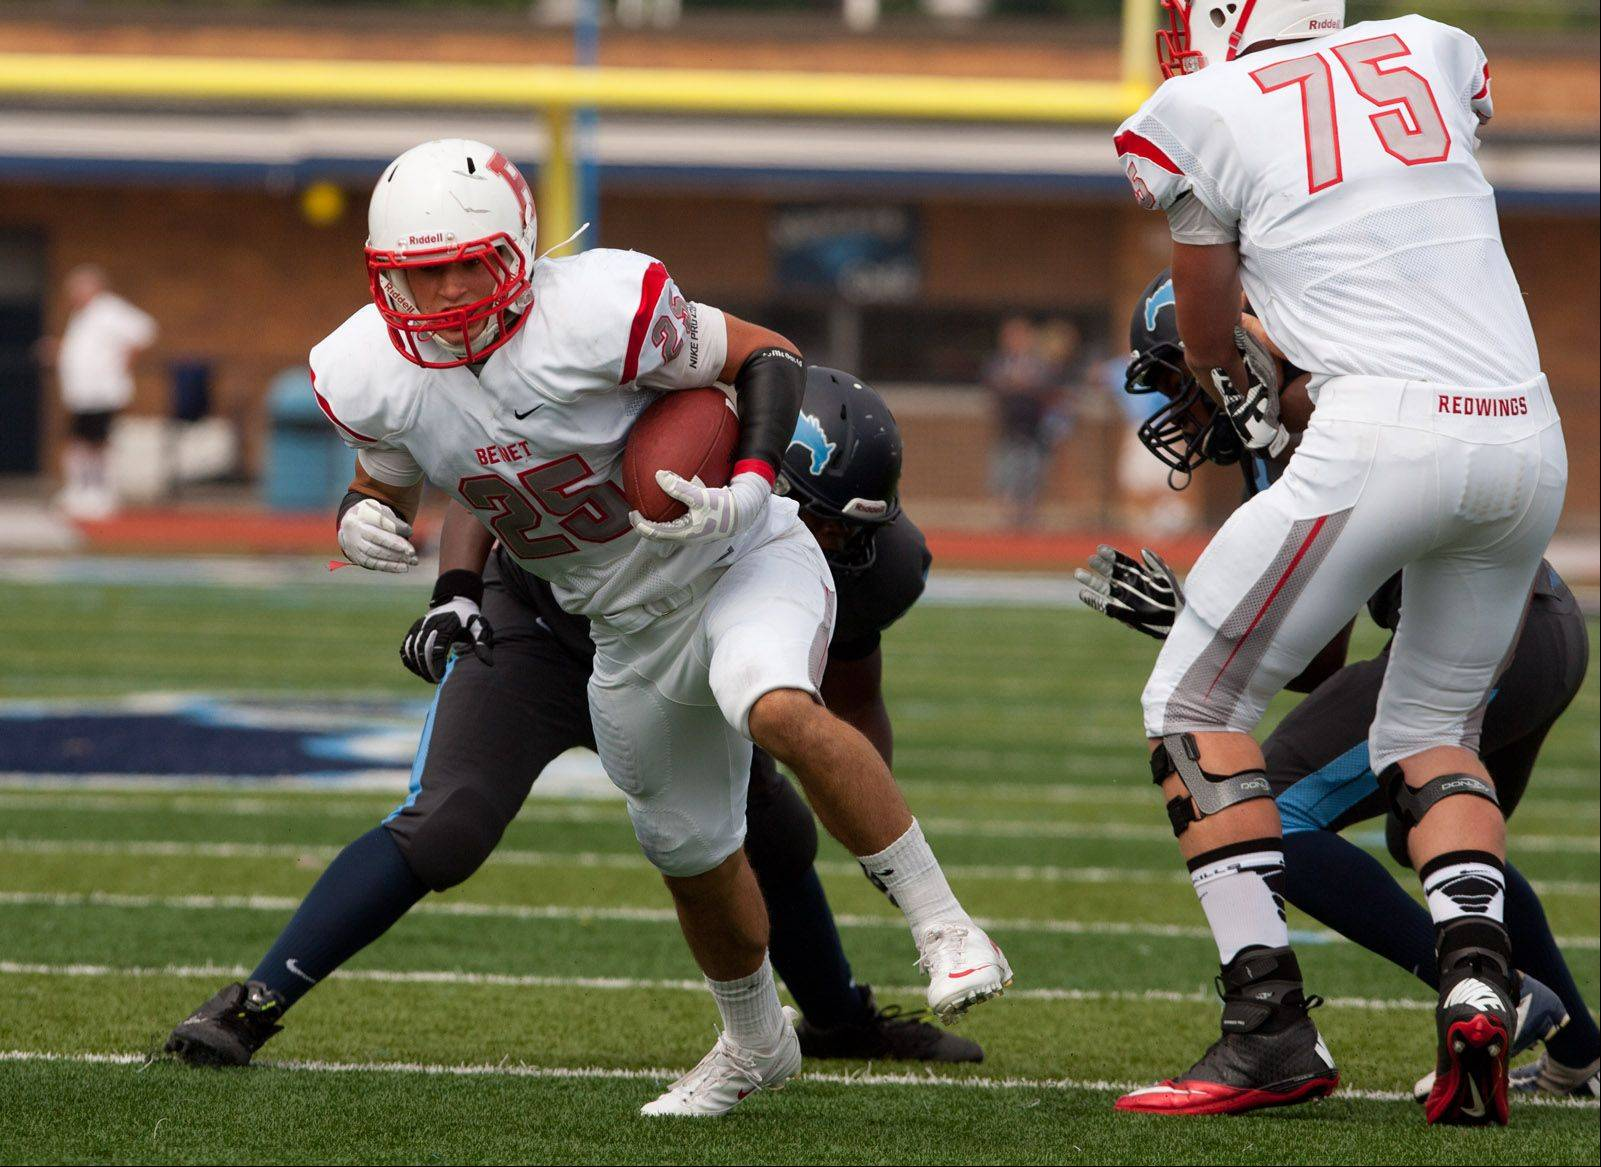 Any true Benet Academy fan already knows the Redwings shut out Downers Grove South in the season opener last Saturday.